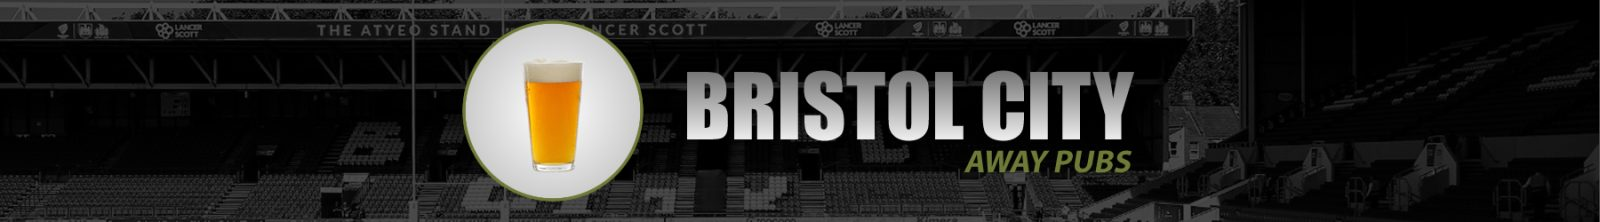 Bristol City Away Pubs